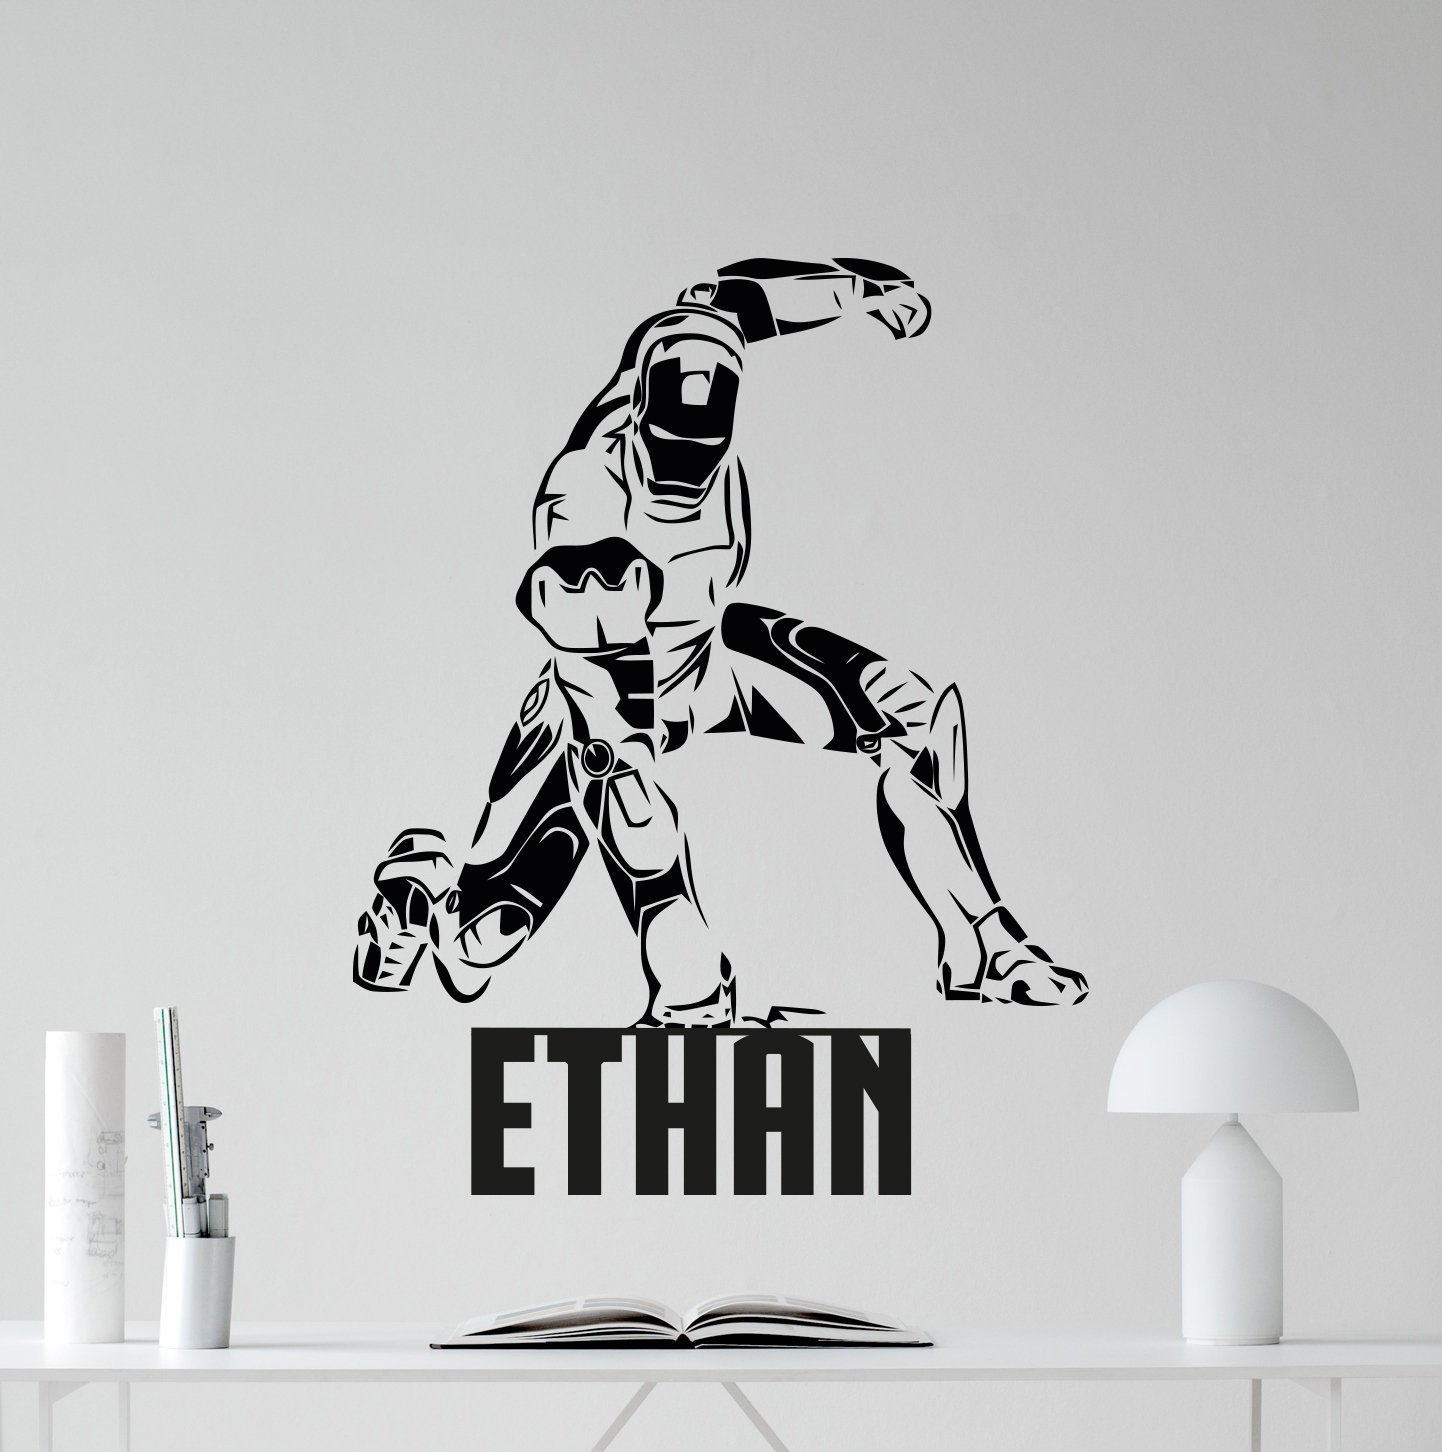 Personalized Iron Man Wall Decal Custom Name Superhero Avengers Poster Marvel Comics Tony Stark Superheroes Vinyl Sticker Cool Movie Wall Art Kids Teen Boys Room Bedroom Wall Decor Mural